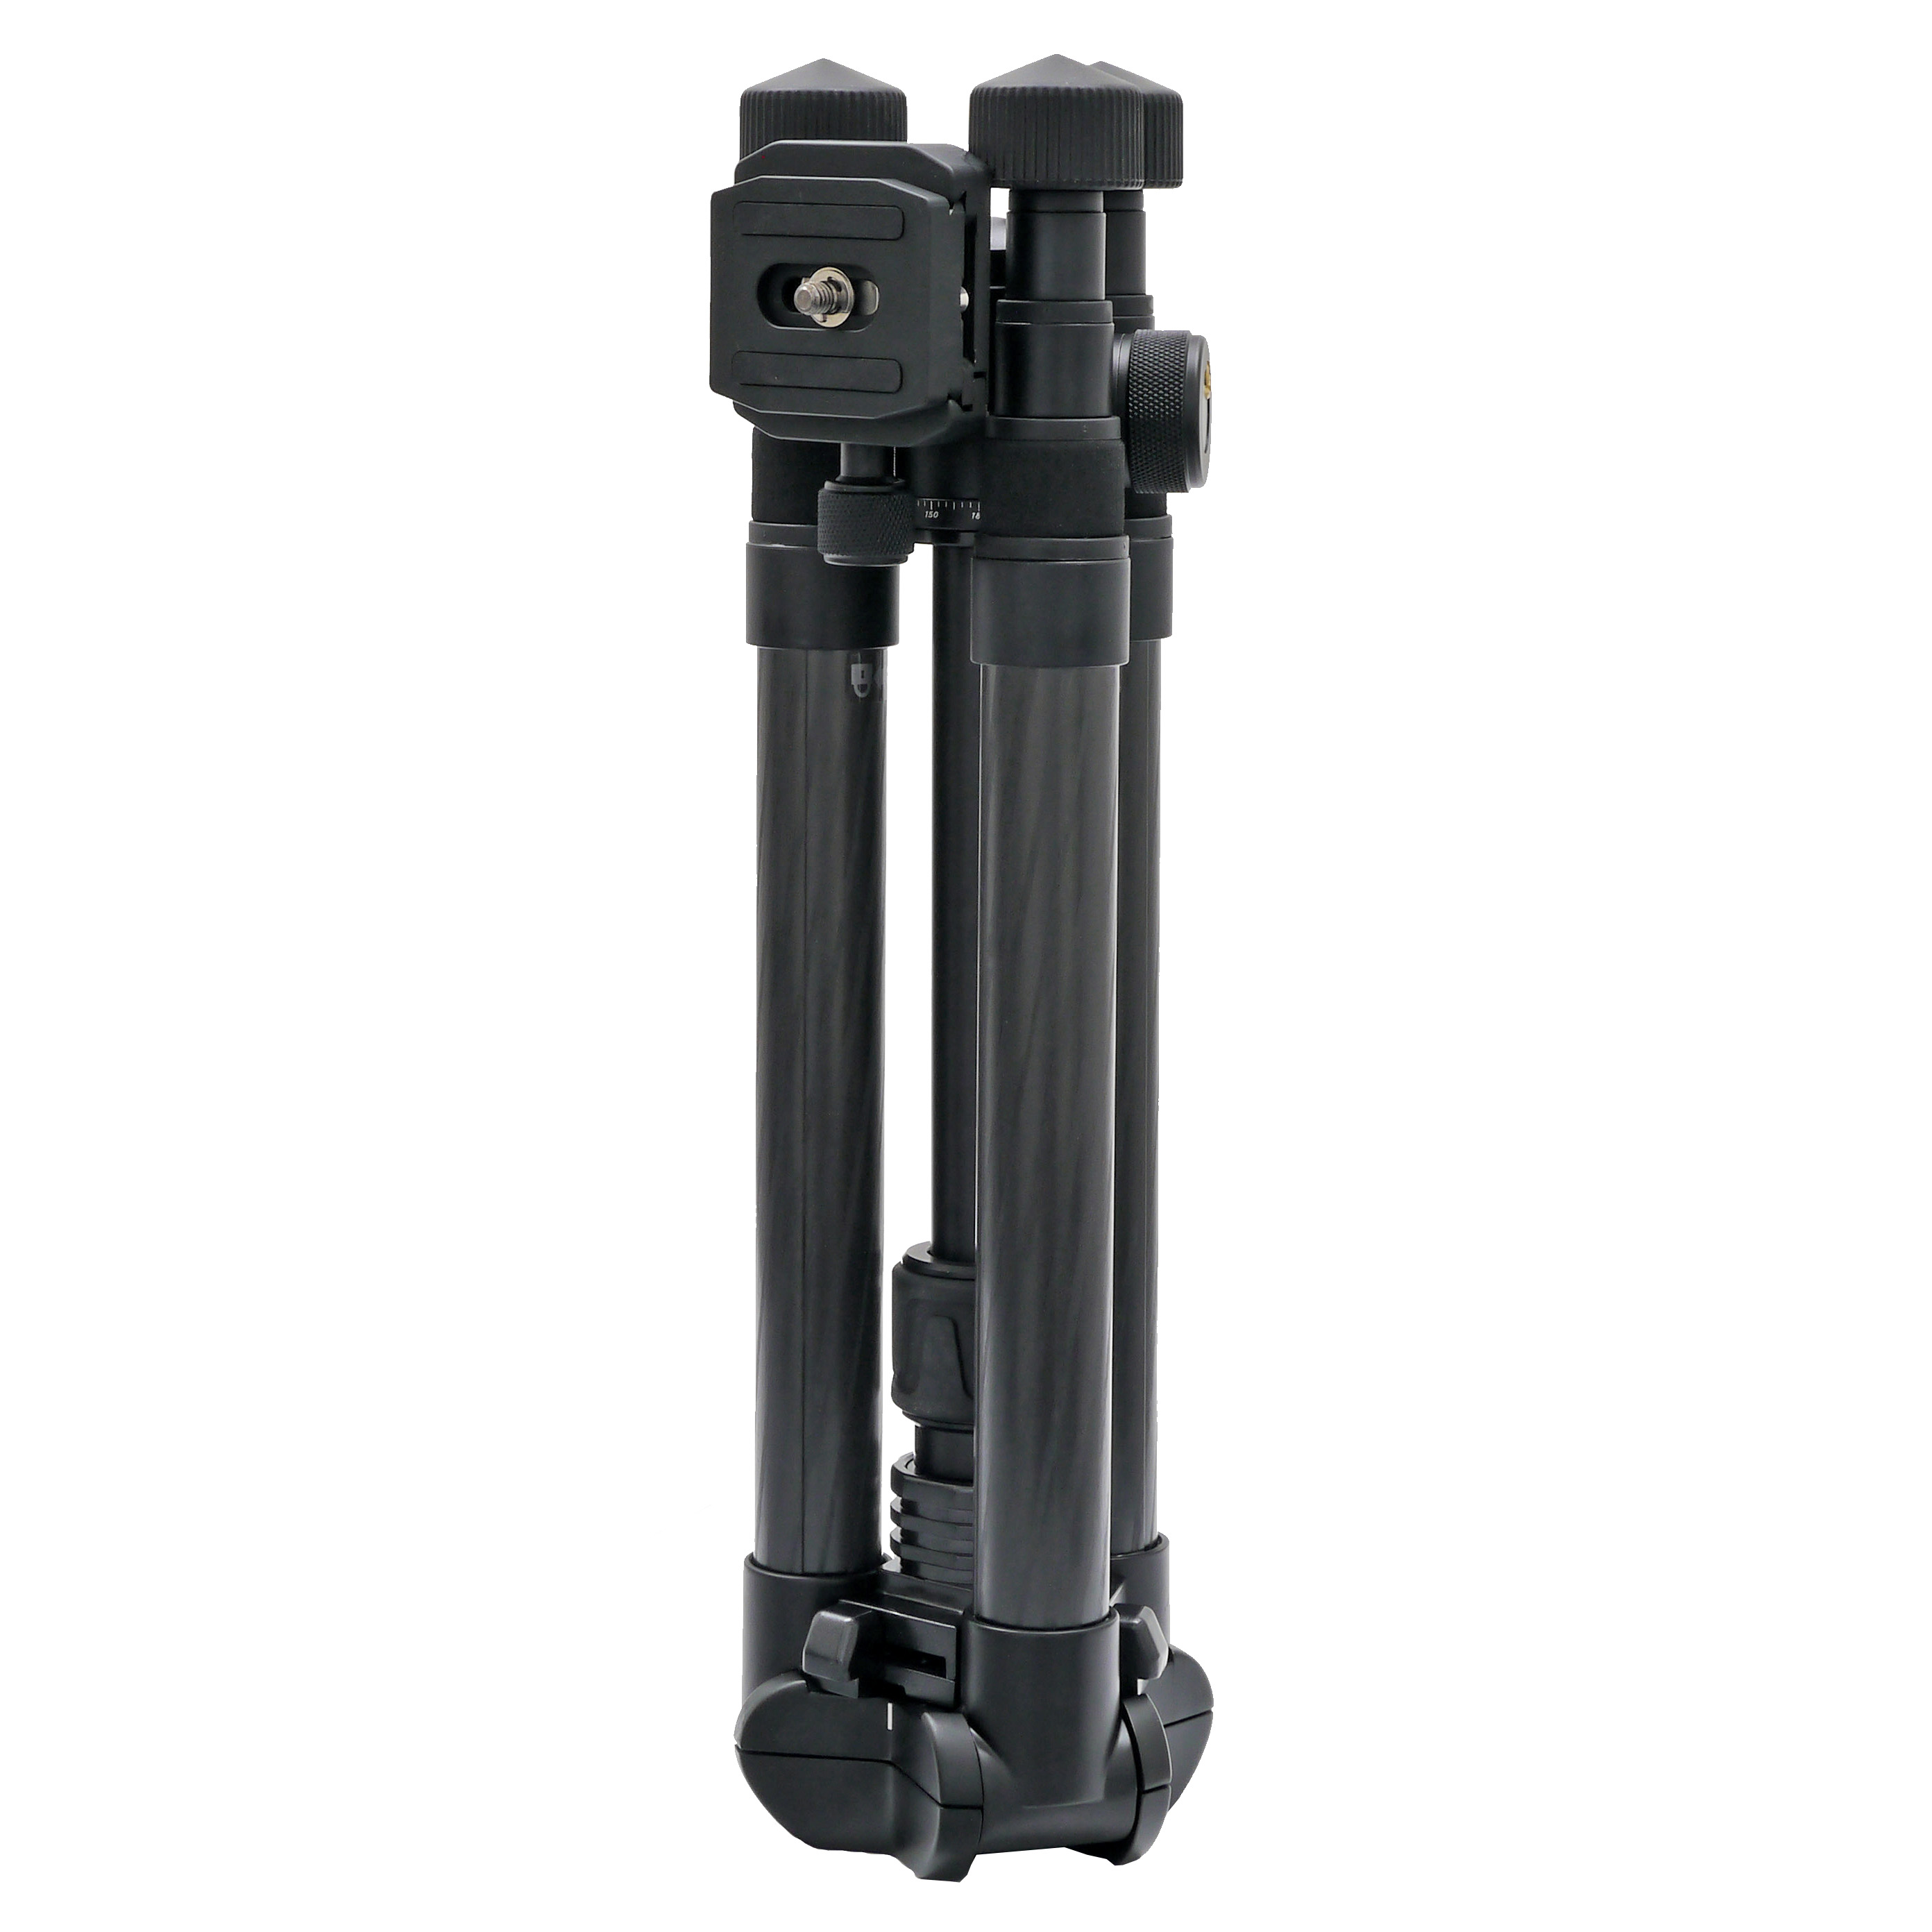 Binoculars & Telescopes Cameras & Photo Velbon Binoculars Accessories Tripod Mounting Adapter Binoculars Com Holder Jp